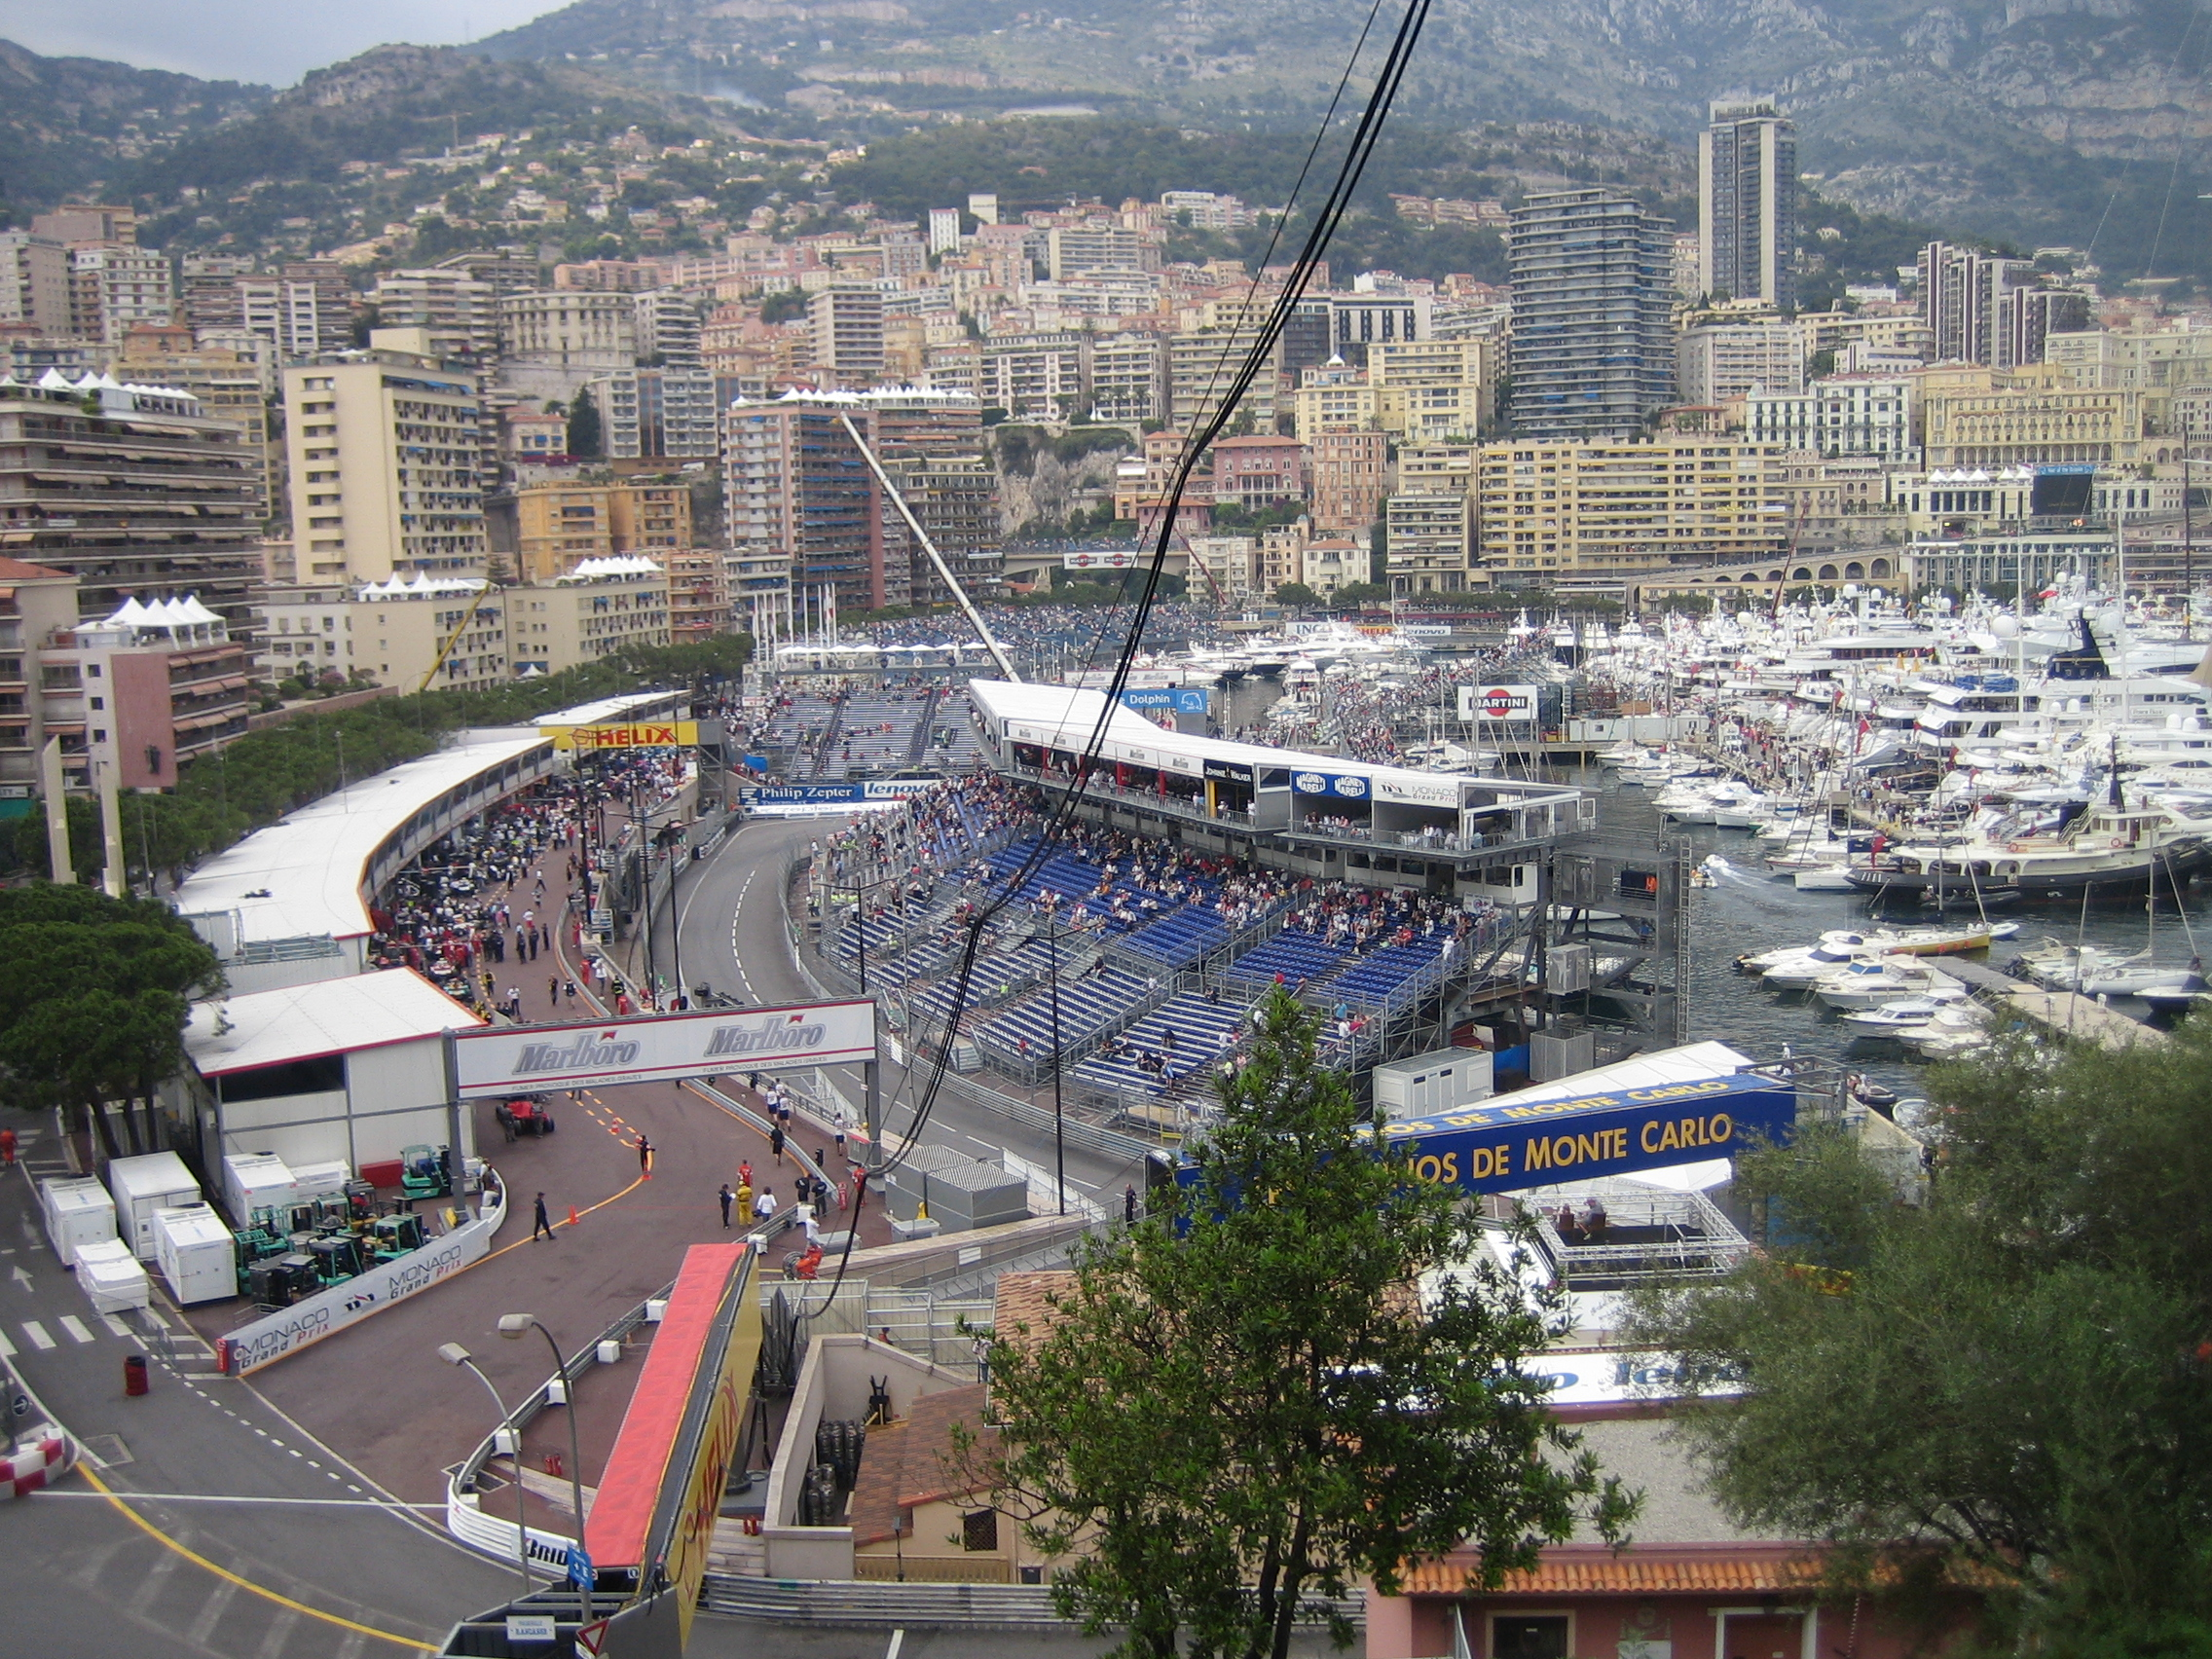 https://upload.wikimedia.org/wikipedia/commons/7/75/Panorama_Monaco_2007.jpg